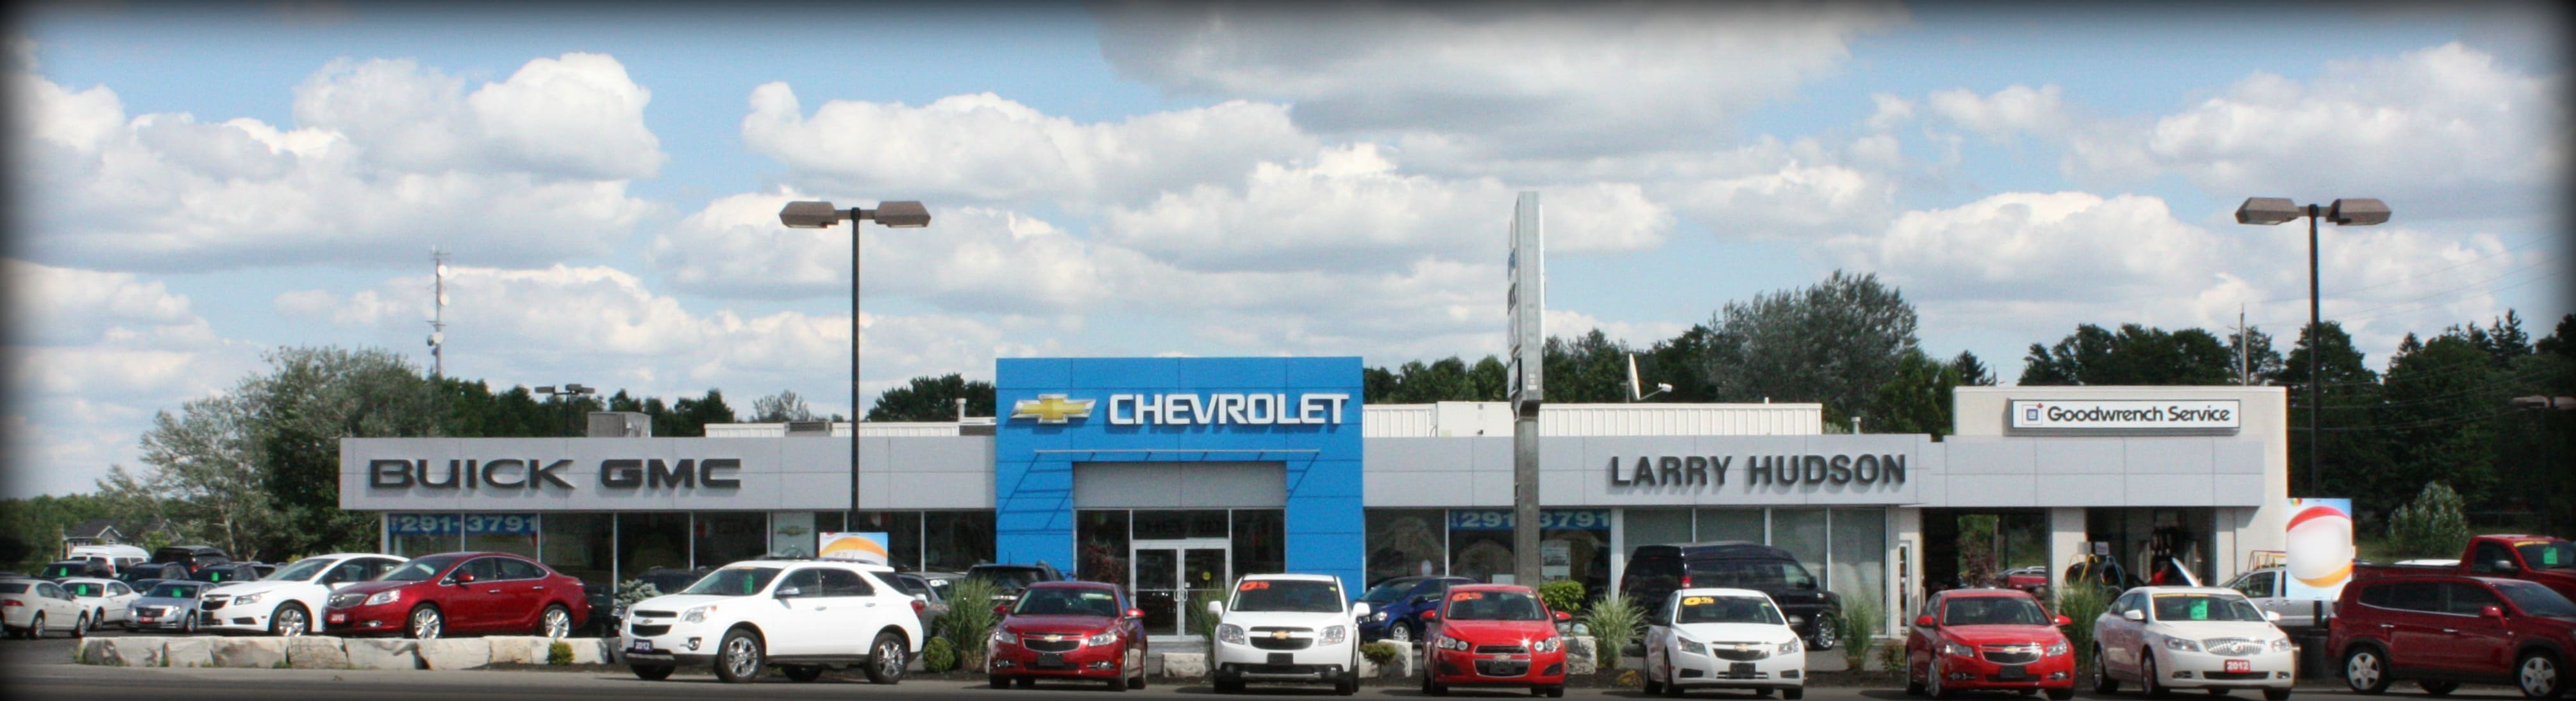 Welcome To Larry Hudson Chevrolet Buick Gmc